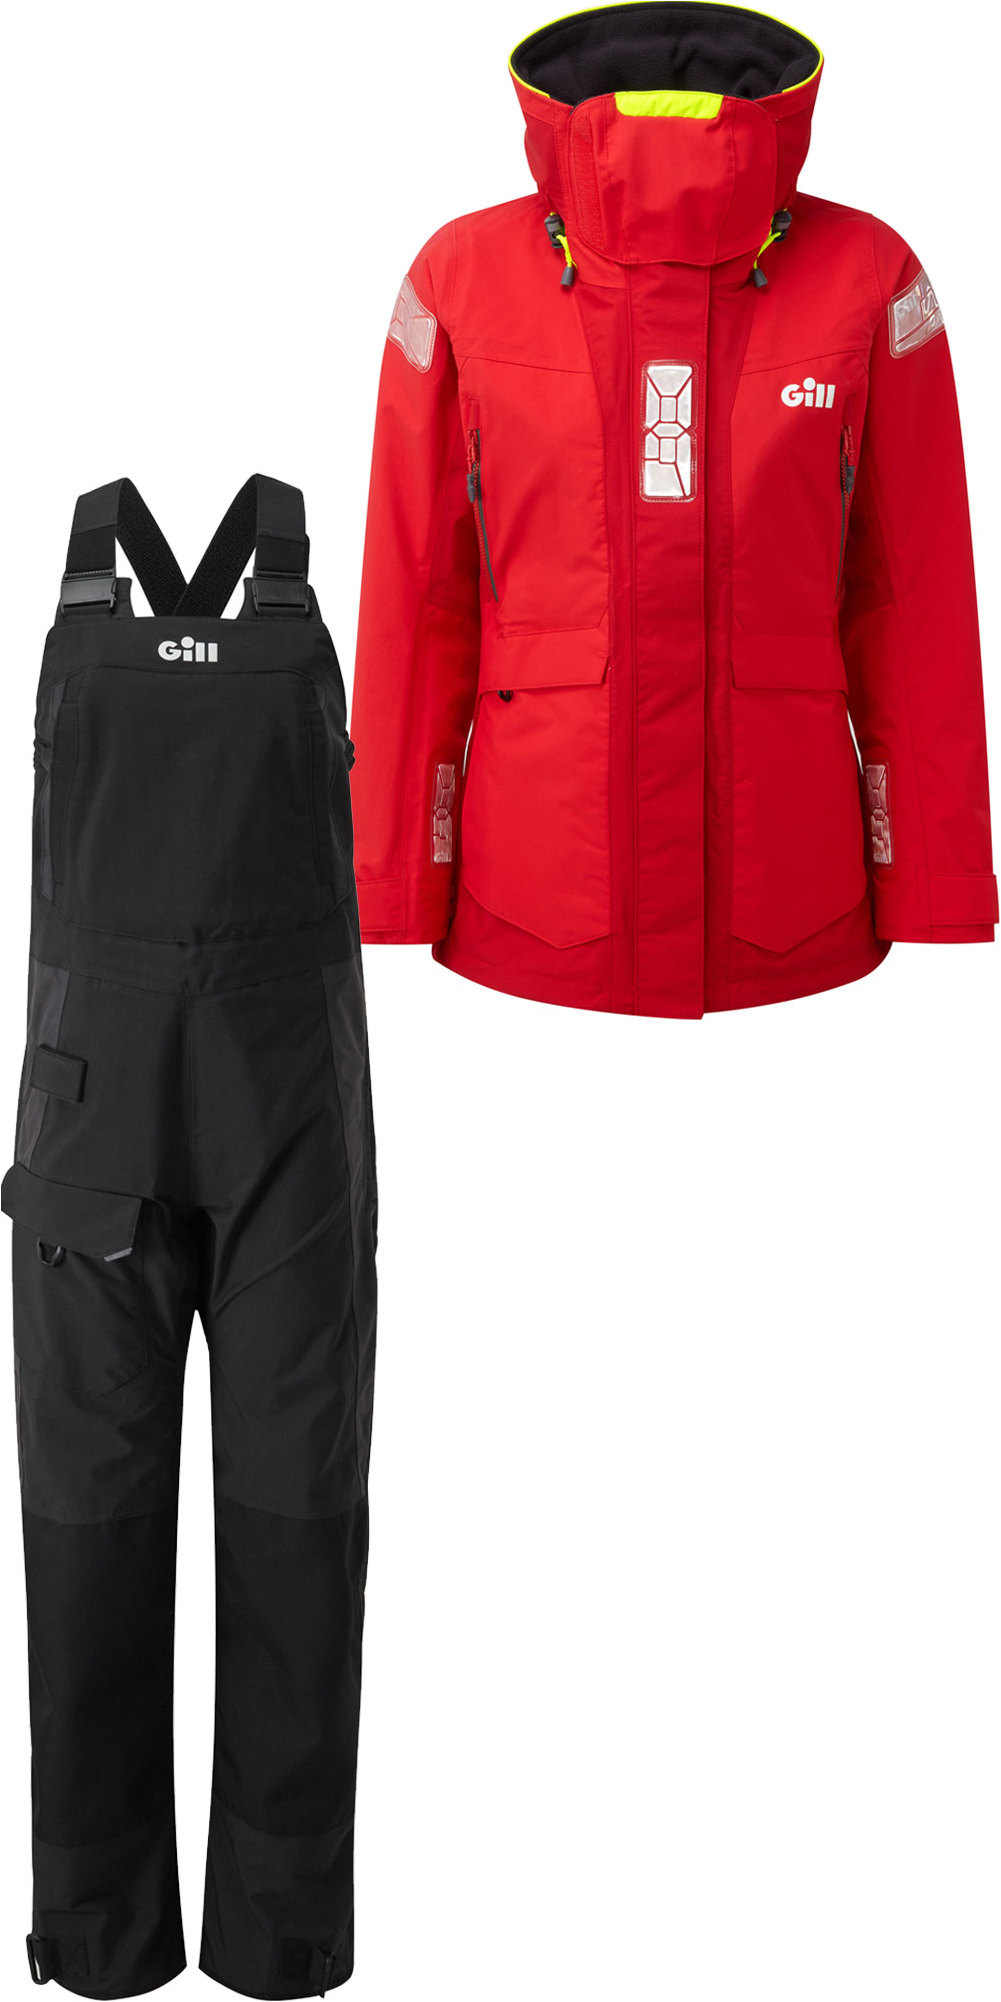 df0e74803 2019 Gill OS2 Womens Offshore Jacket OS24JW & Trouser OS24TW Combi Set Red  / Black